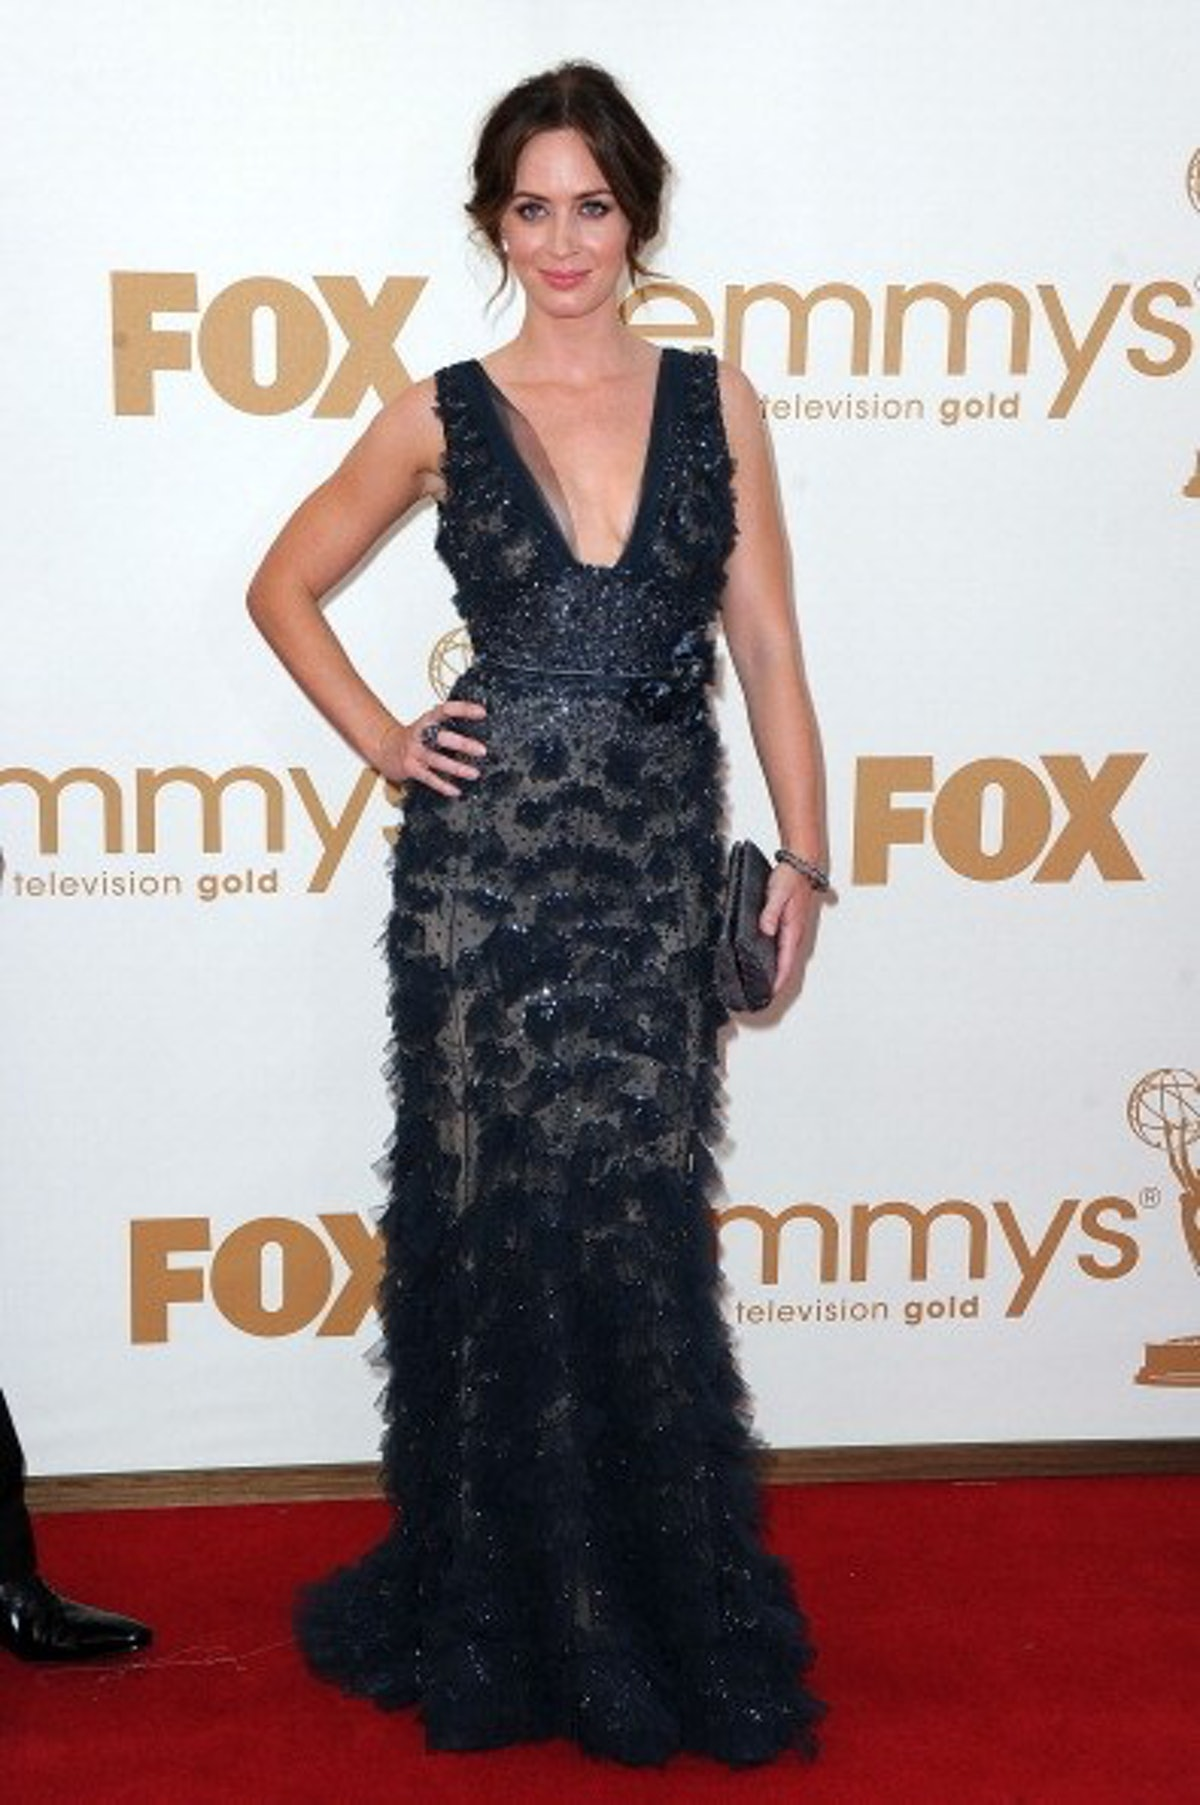 Emily Blunt in black gown at Emmys.